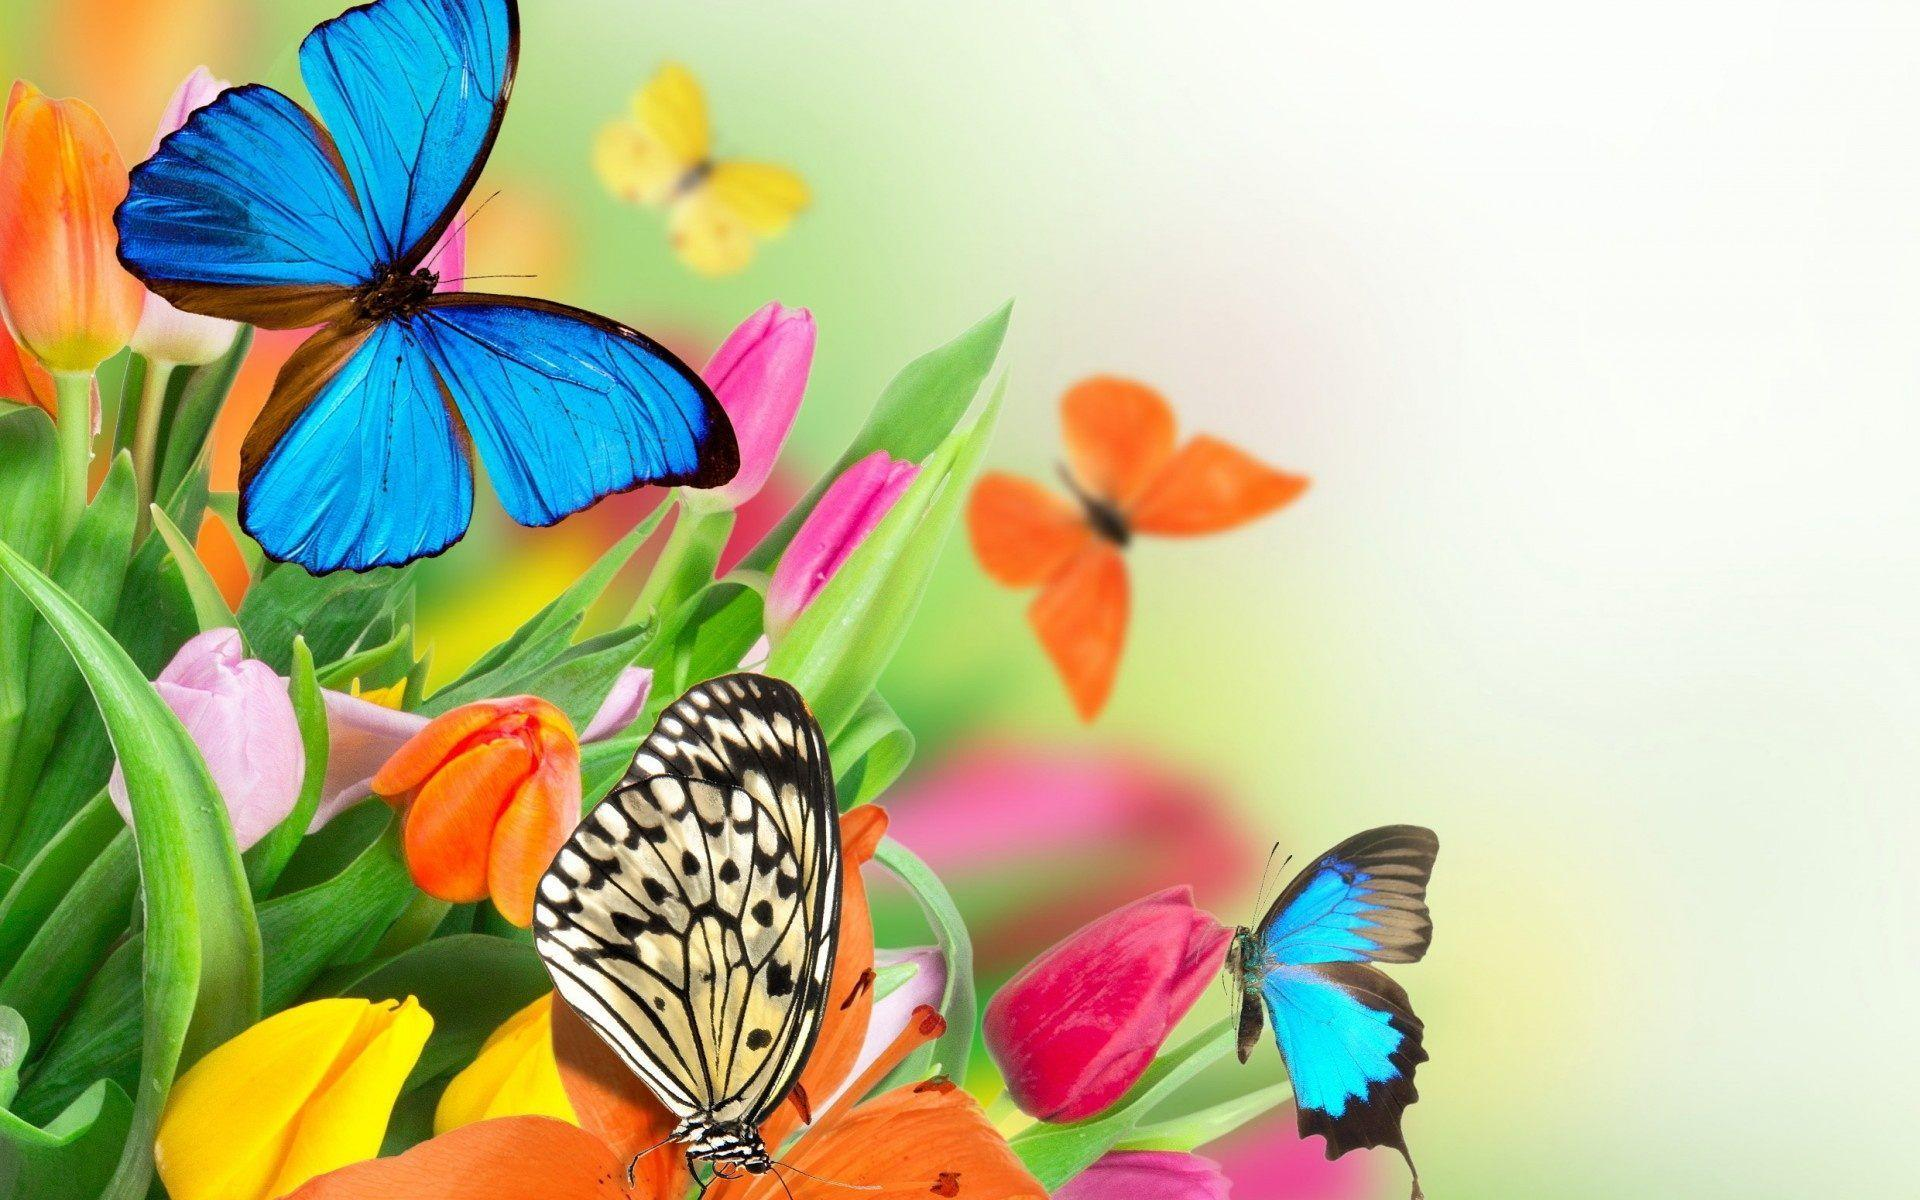 Colorful Butterfly Wallpapers - Wallpaper Cave